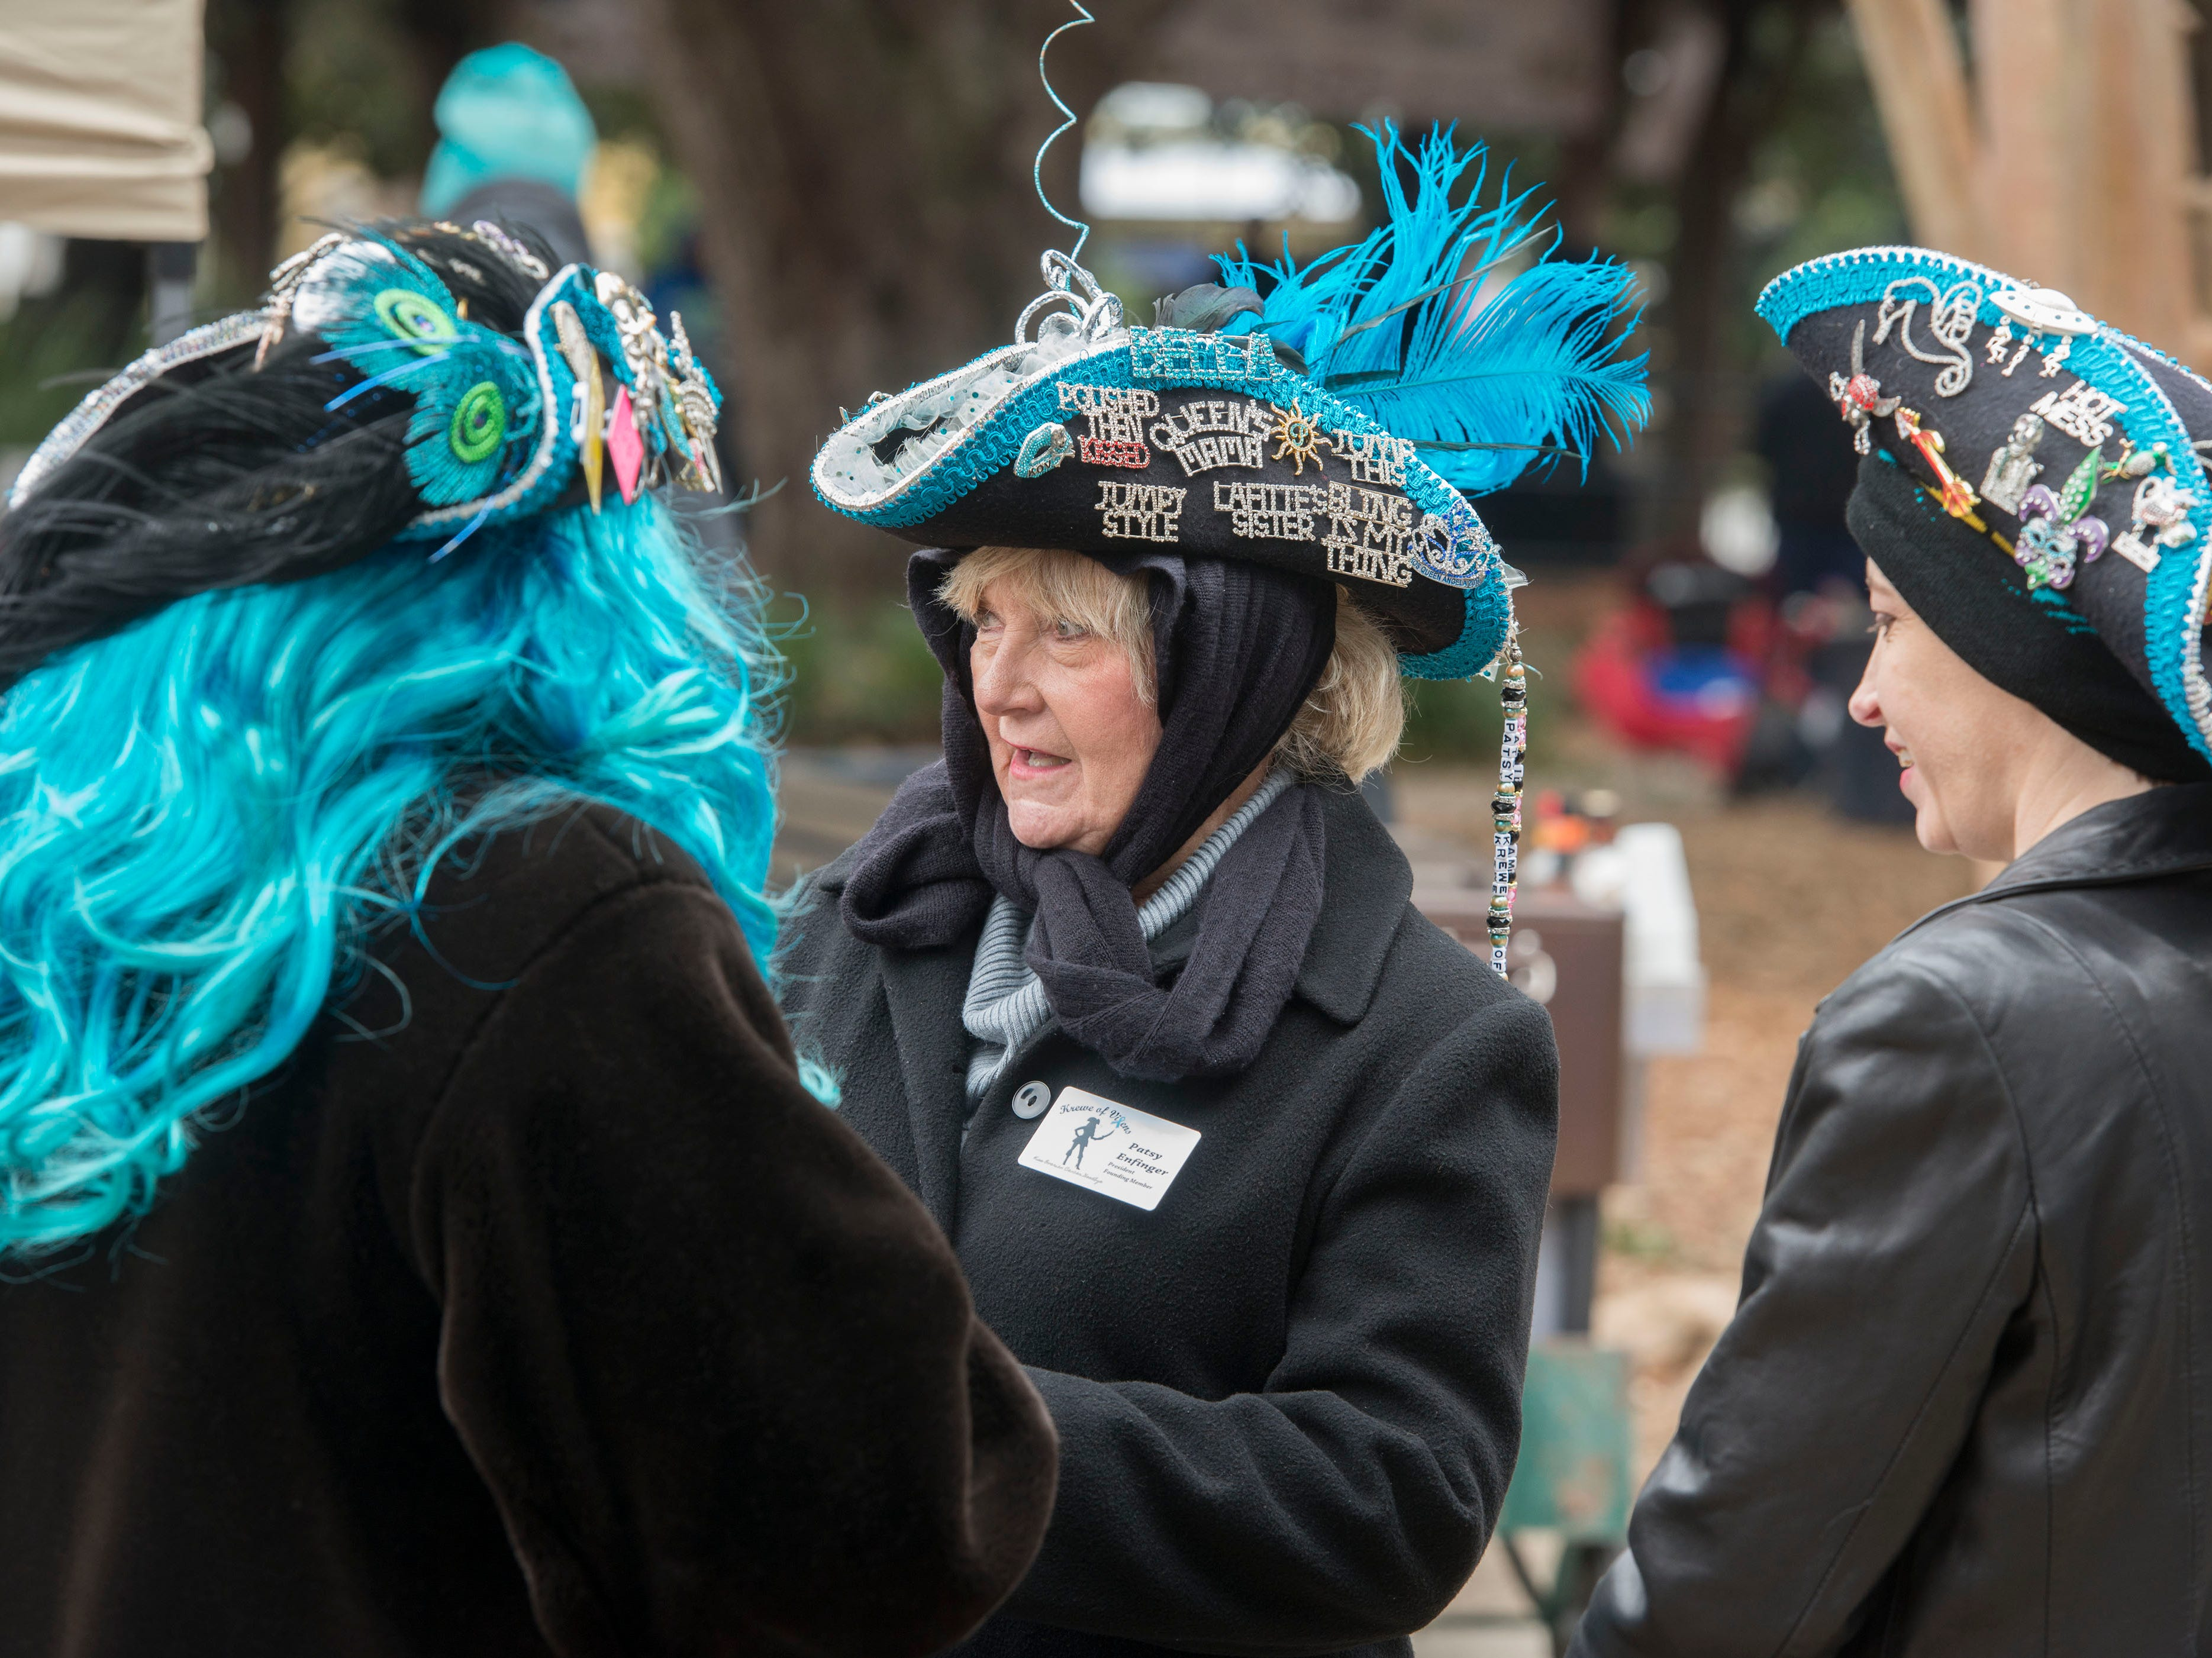 The Krewe of Blues held its Pin and Bead Festival at Seville Square. Sunday, January 20, 2019. The free event included music, food, games and a Diaper Drive for Gulf Coast Kid's House.